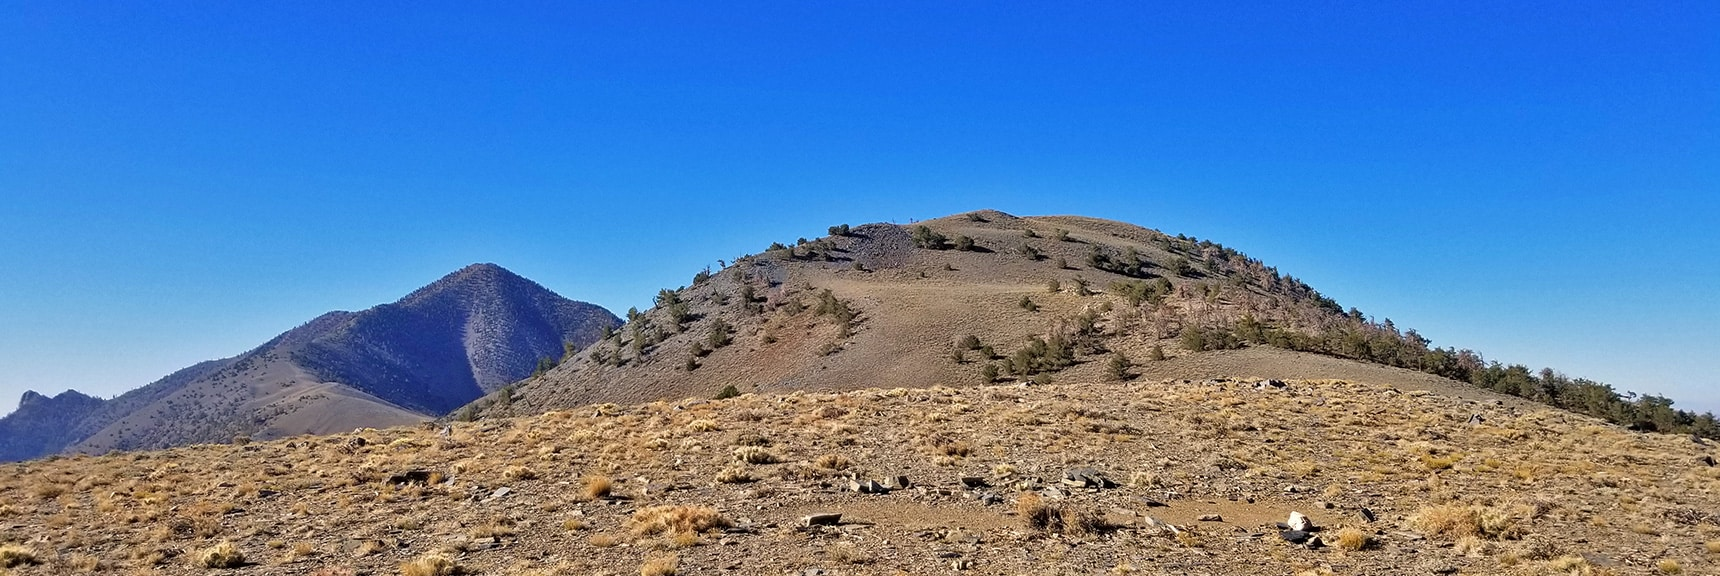 Bennett Peak and Telescope Peak in View. Trail Circles Right Side of Bennett Peak   Telescope Peak Summit from Wildrose Charcoal Kilns Parking Area, Panamint Mountains, Death Valley National Park, California